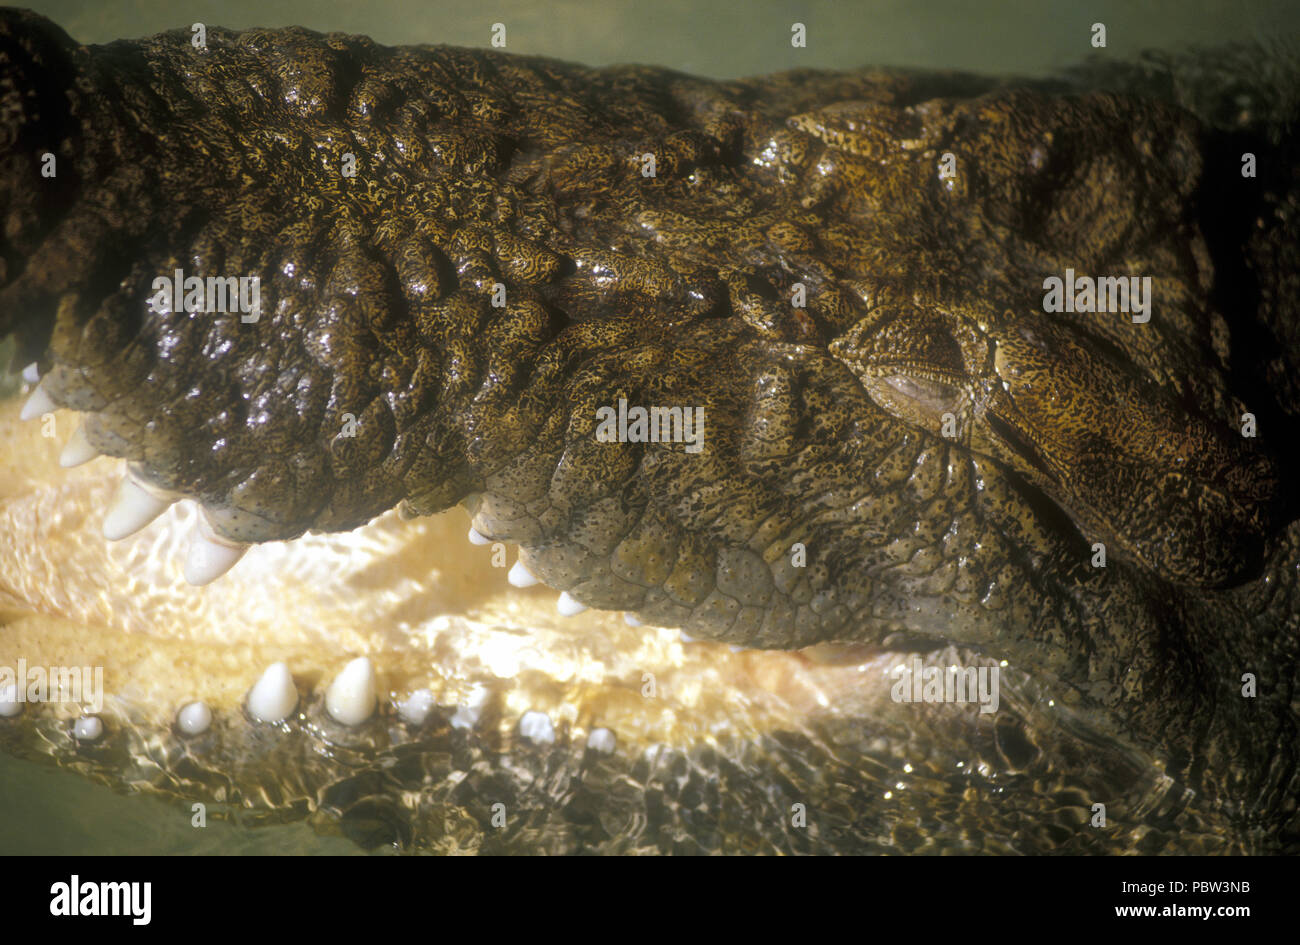 CLOSE-UP OF THE EYE AND JAW OF A SALTWATER CROCODILE (CROCODYLUS POROSUS) KAKADU NATIONAL PARK, NORTHERN TERRITORY, AUSTRALIA Stock Photo